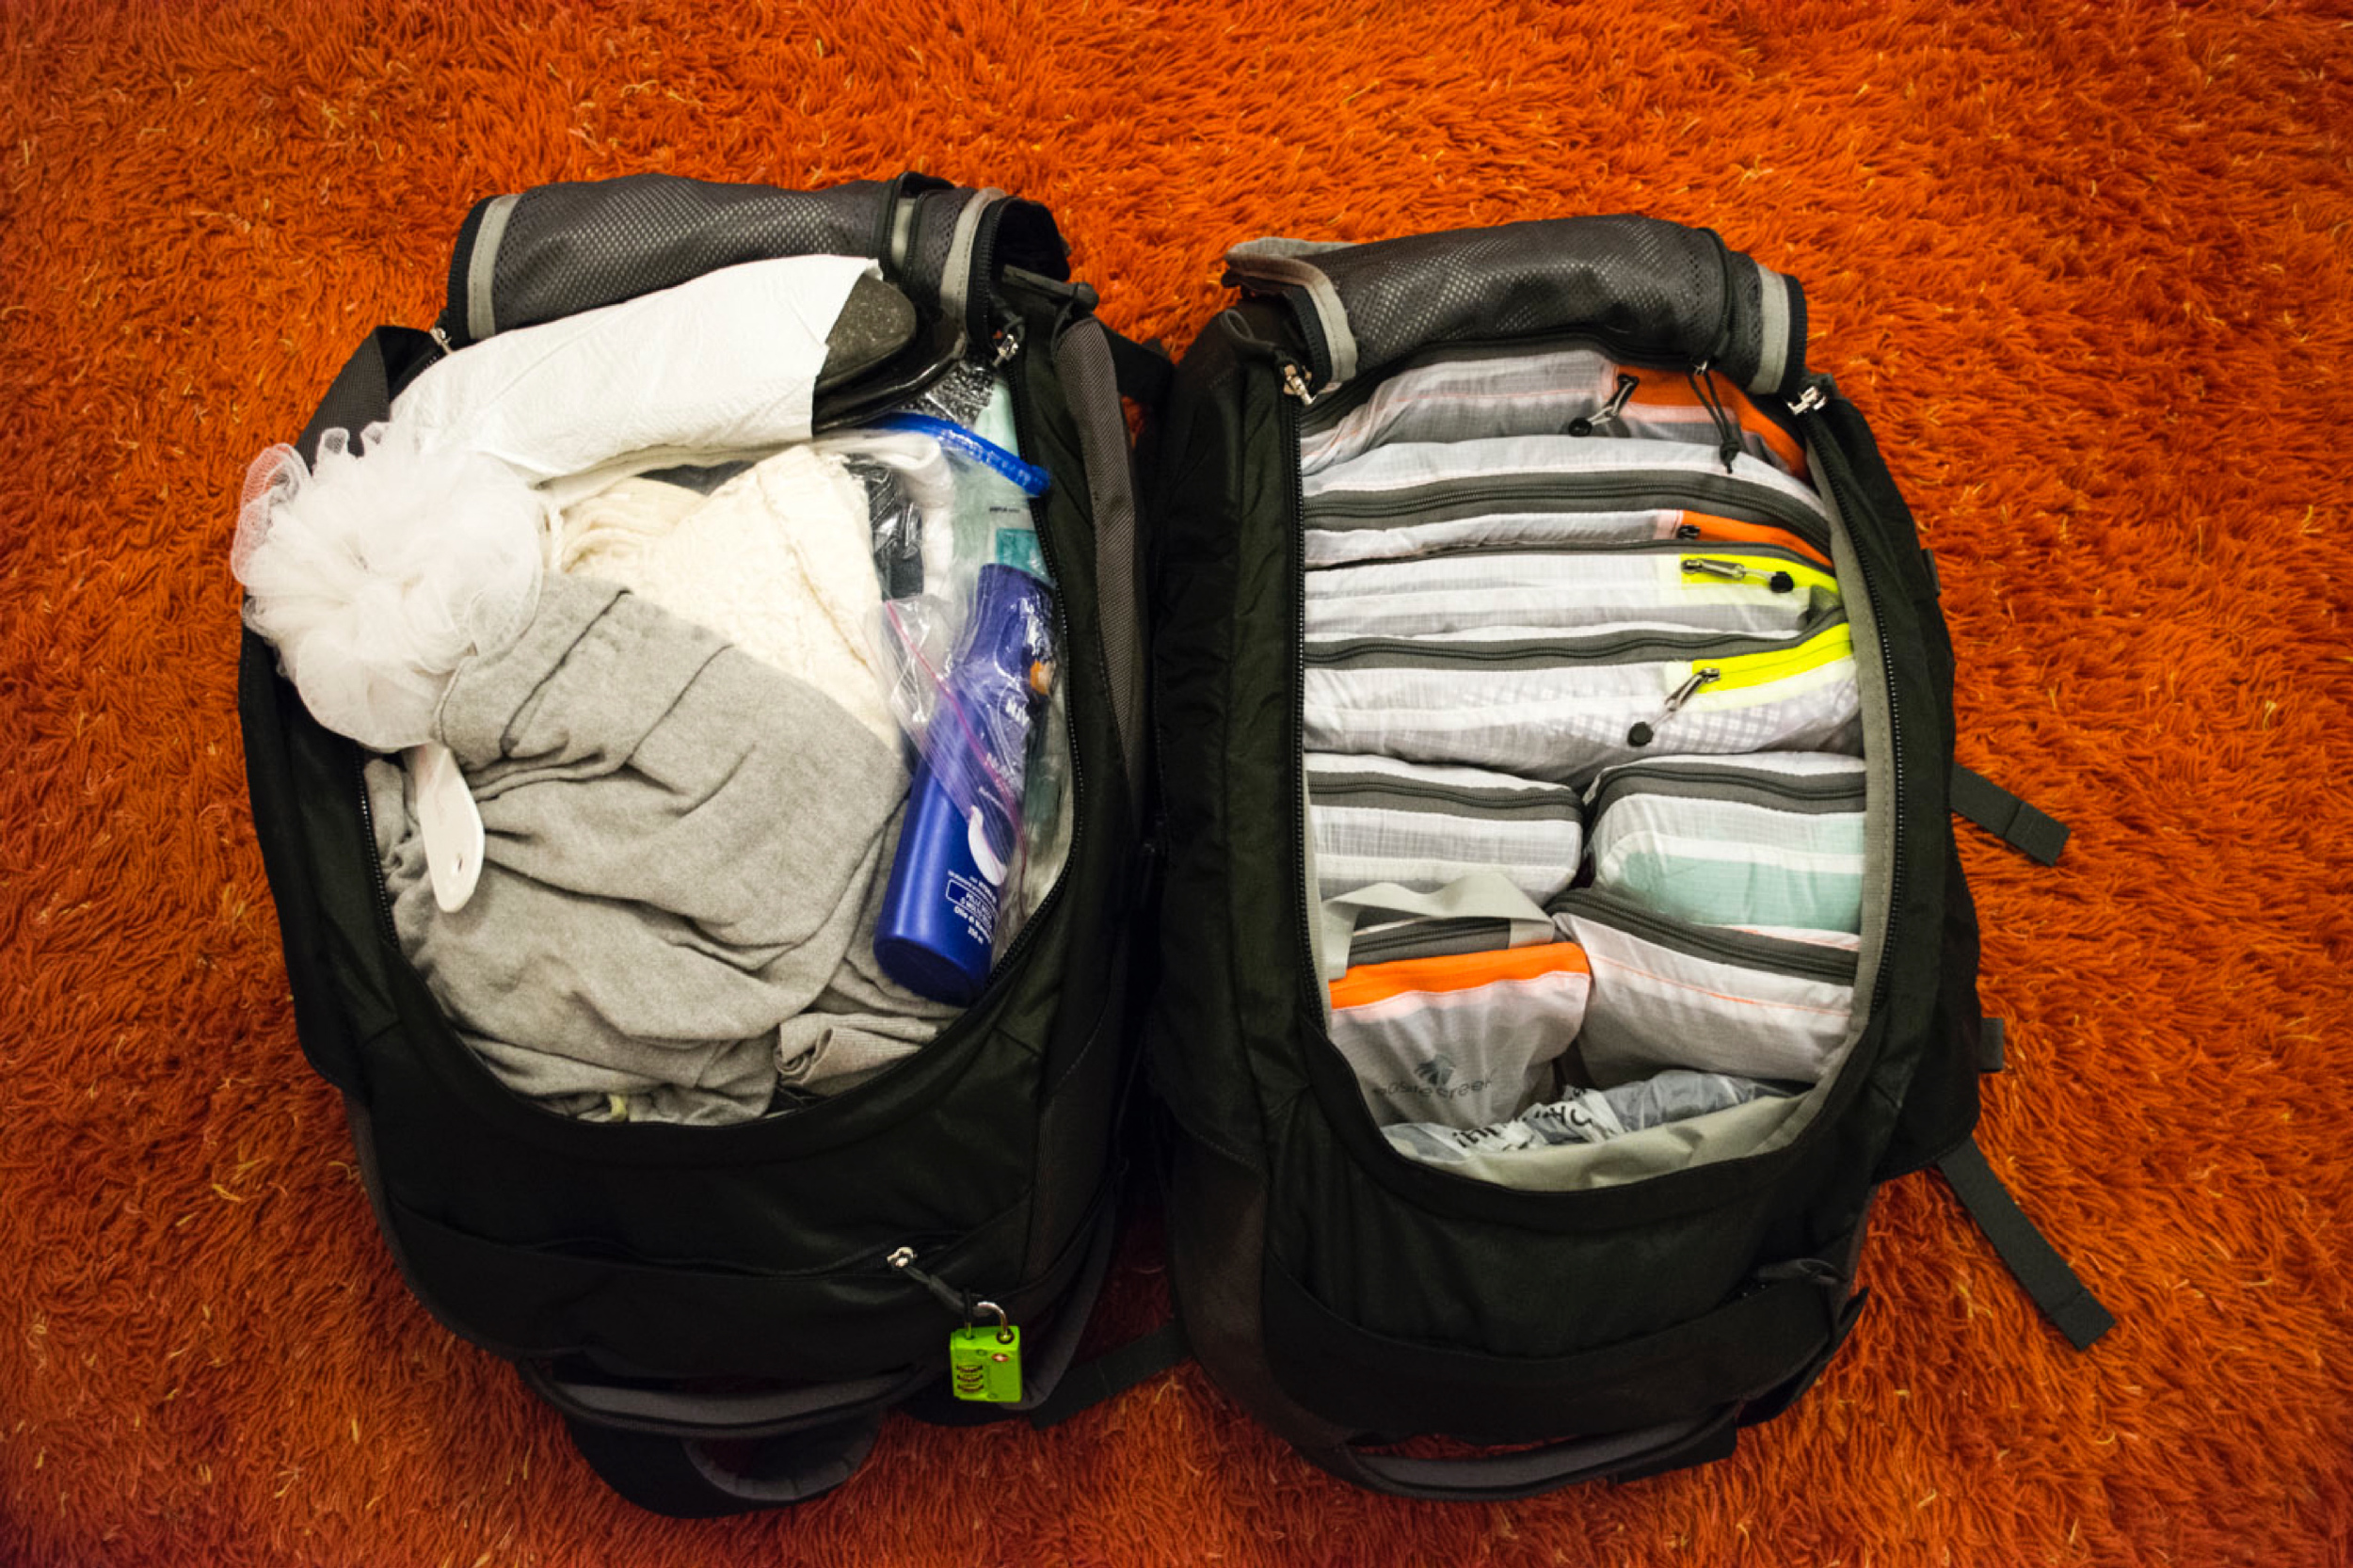 Our bags packed while in Florence. Guess which one belongs toChris?